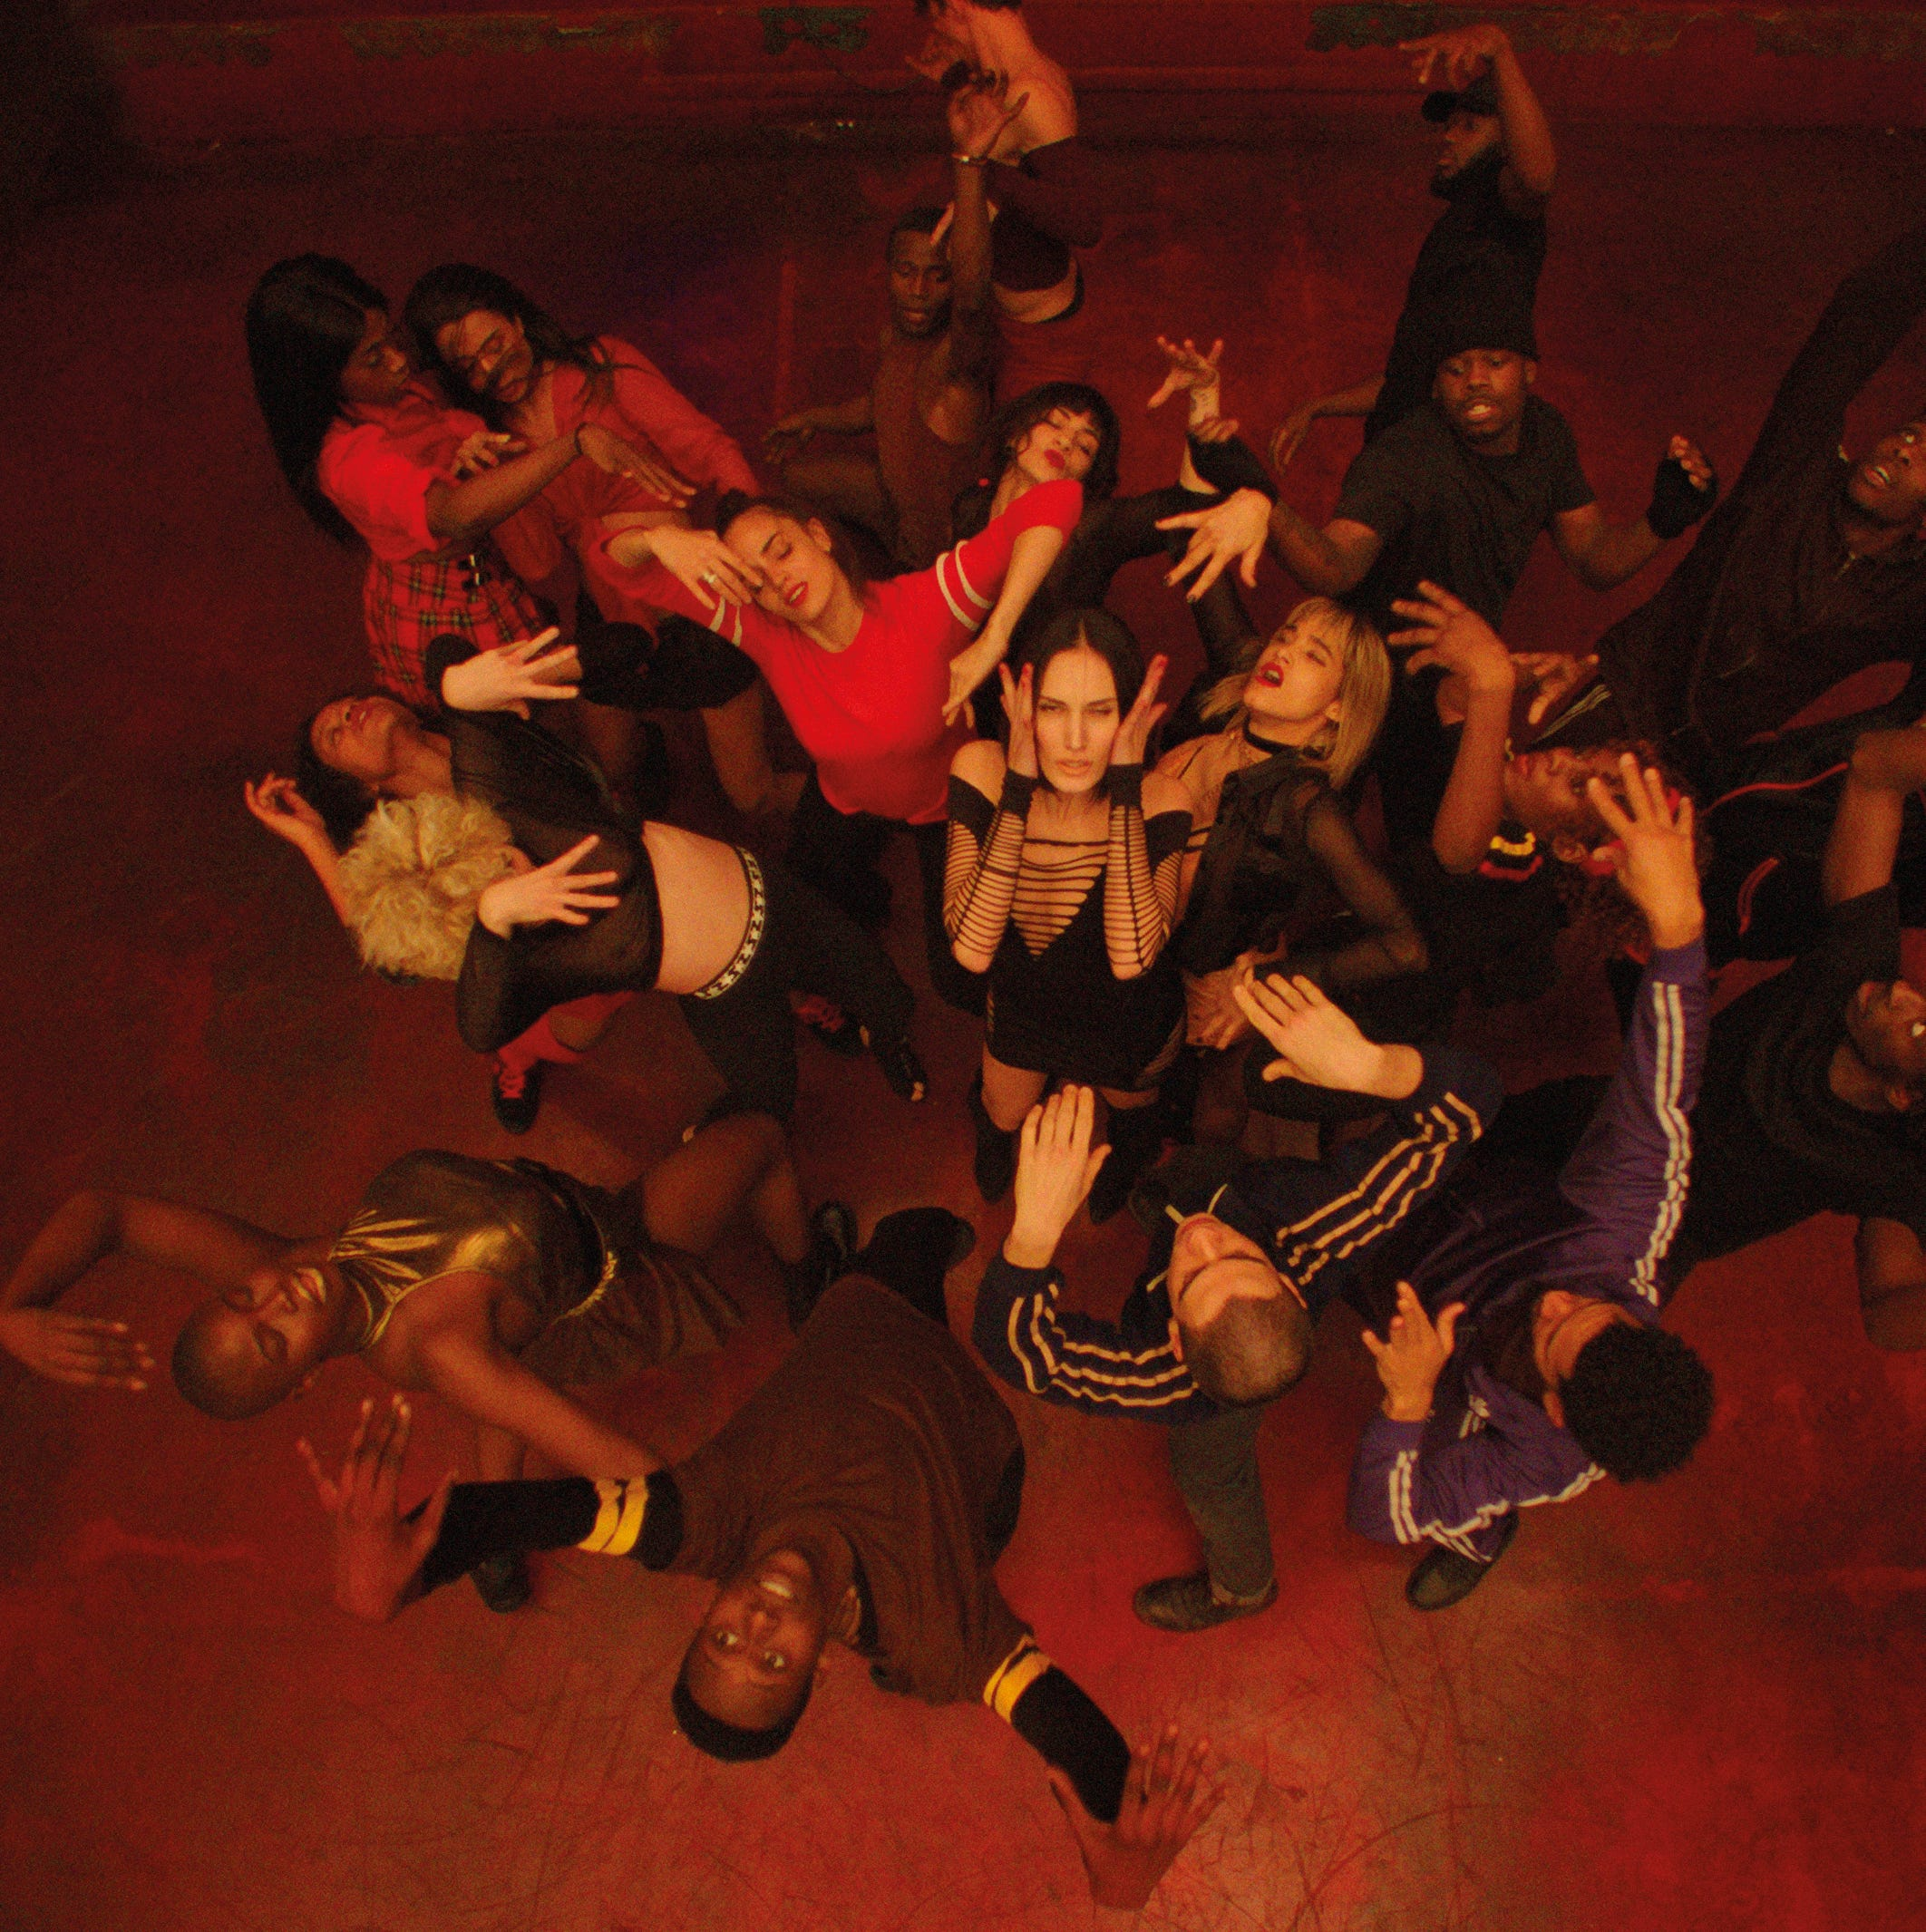 Gaspar Noé's 'Climax' is a beautiful nightmare